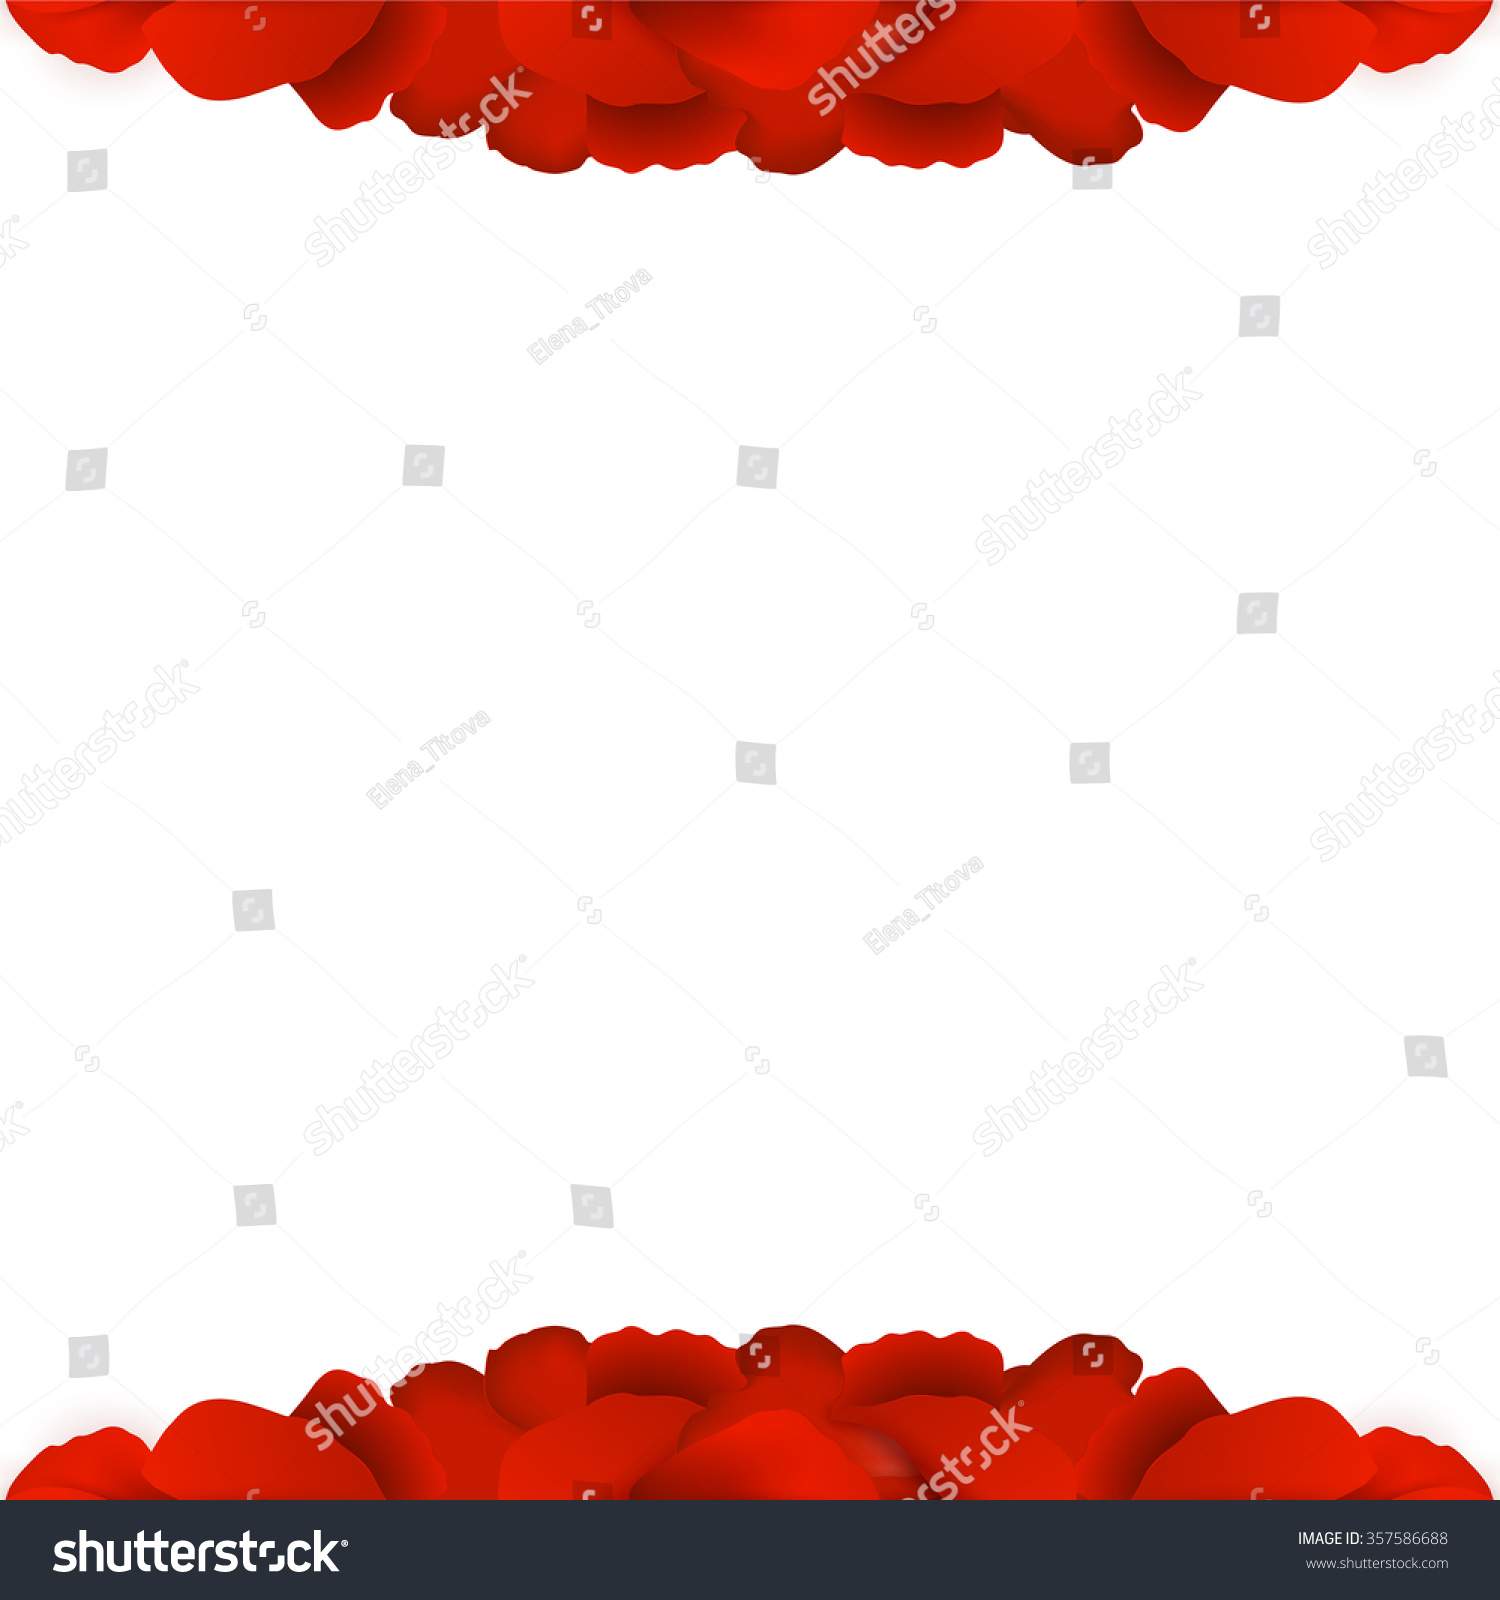 Red gift bows border with clipping path for easy background removing - Rose Petals Border